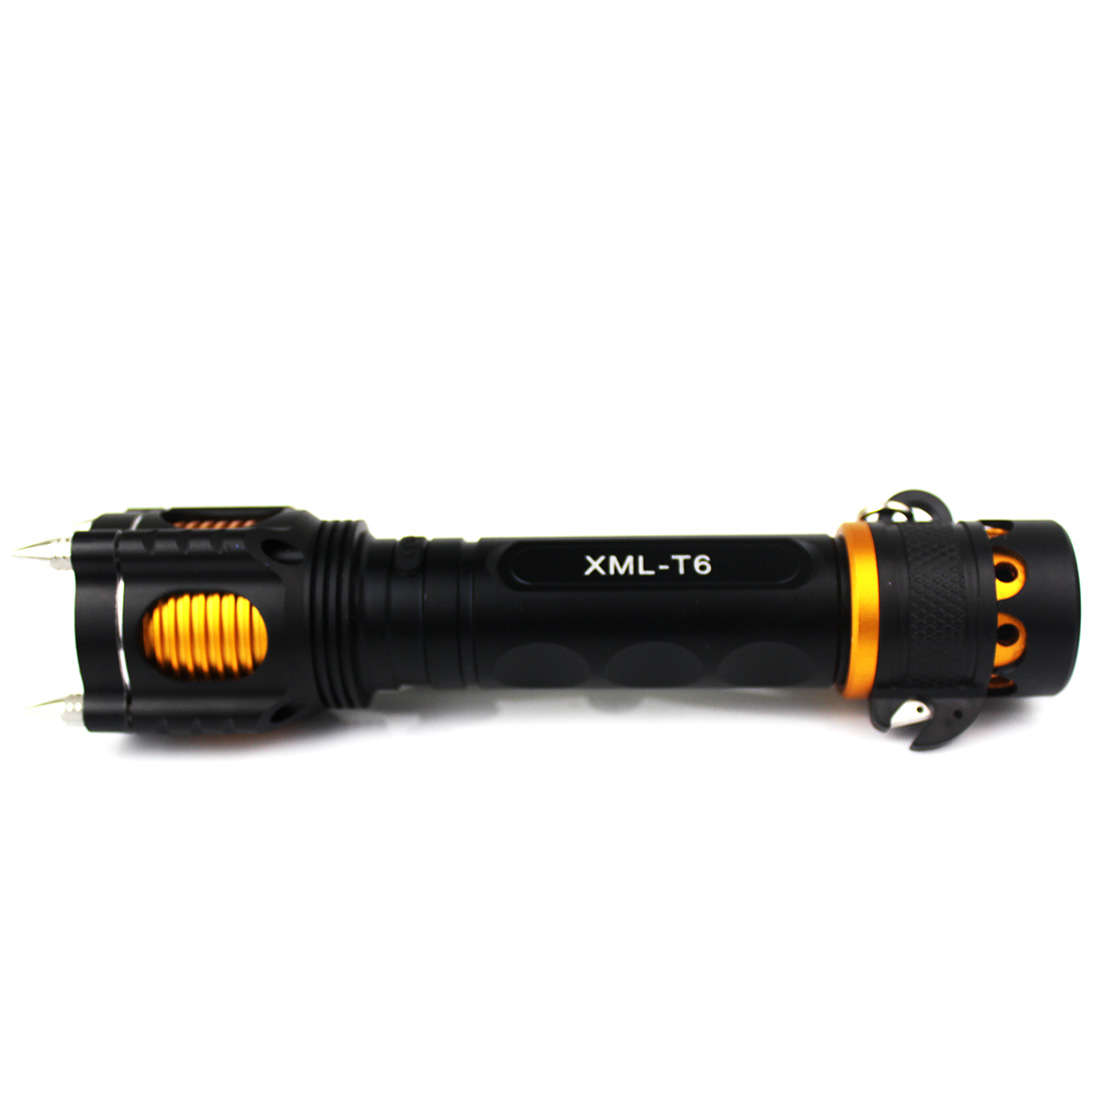 Hot Aluminum Alloy Zoom Adjustable T6 <font><b>LED</b></font> Flashlight Torch 5 Modes 2000 Lumen Lamp Black <font><b>zaklamp</b></font>